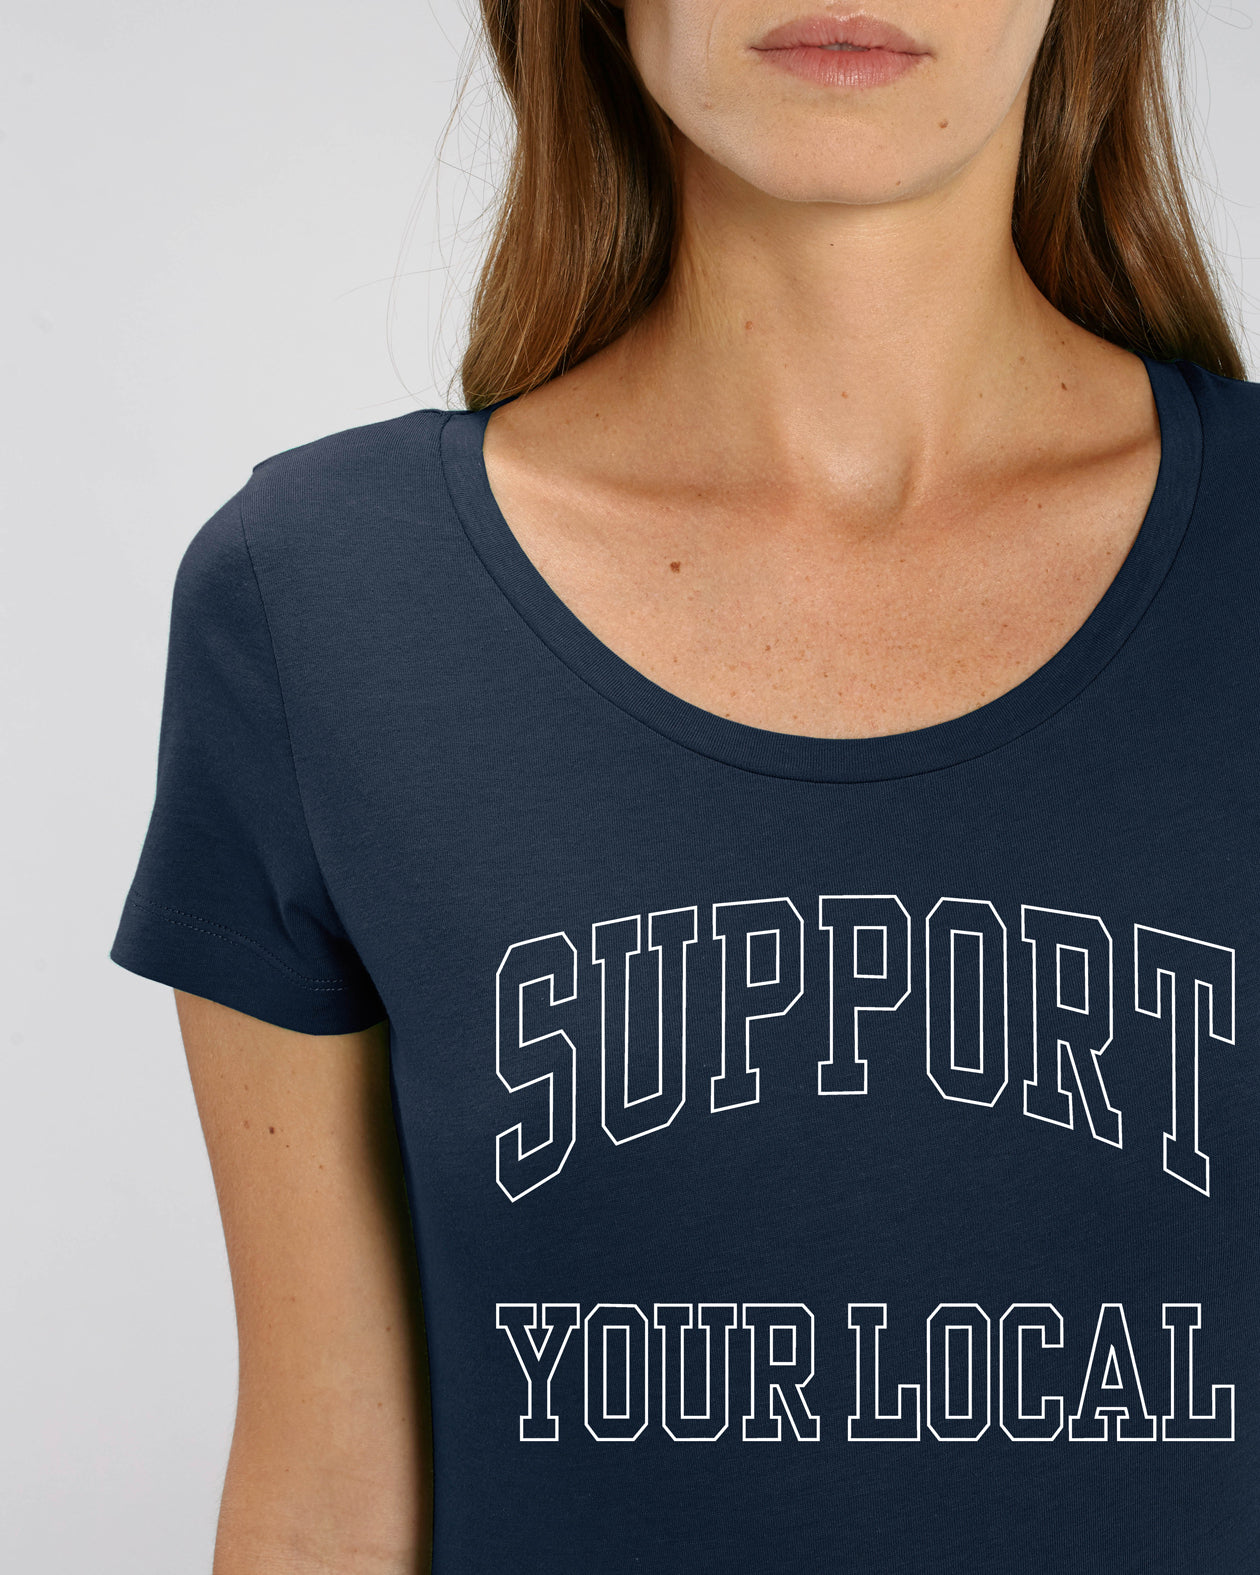 SUPPORT YOUR LOCAL womens t-shirt (uniline print)